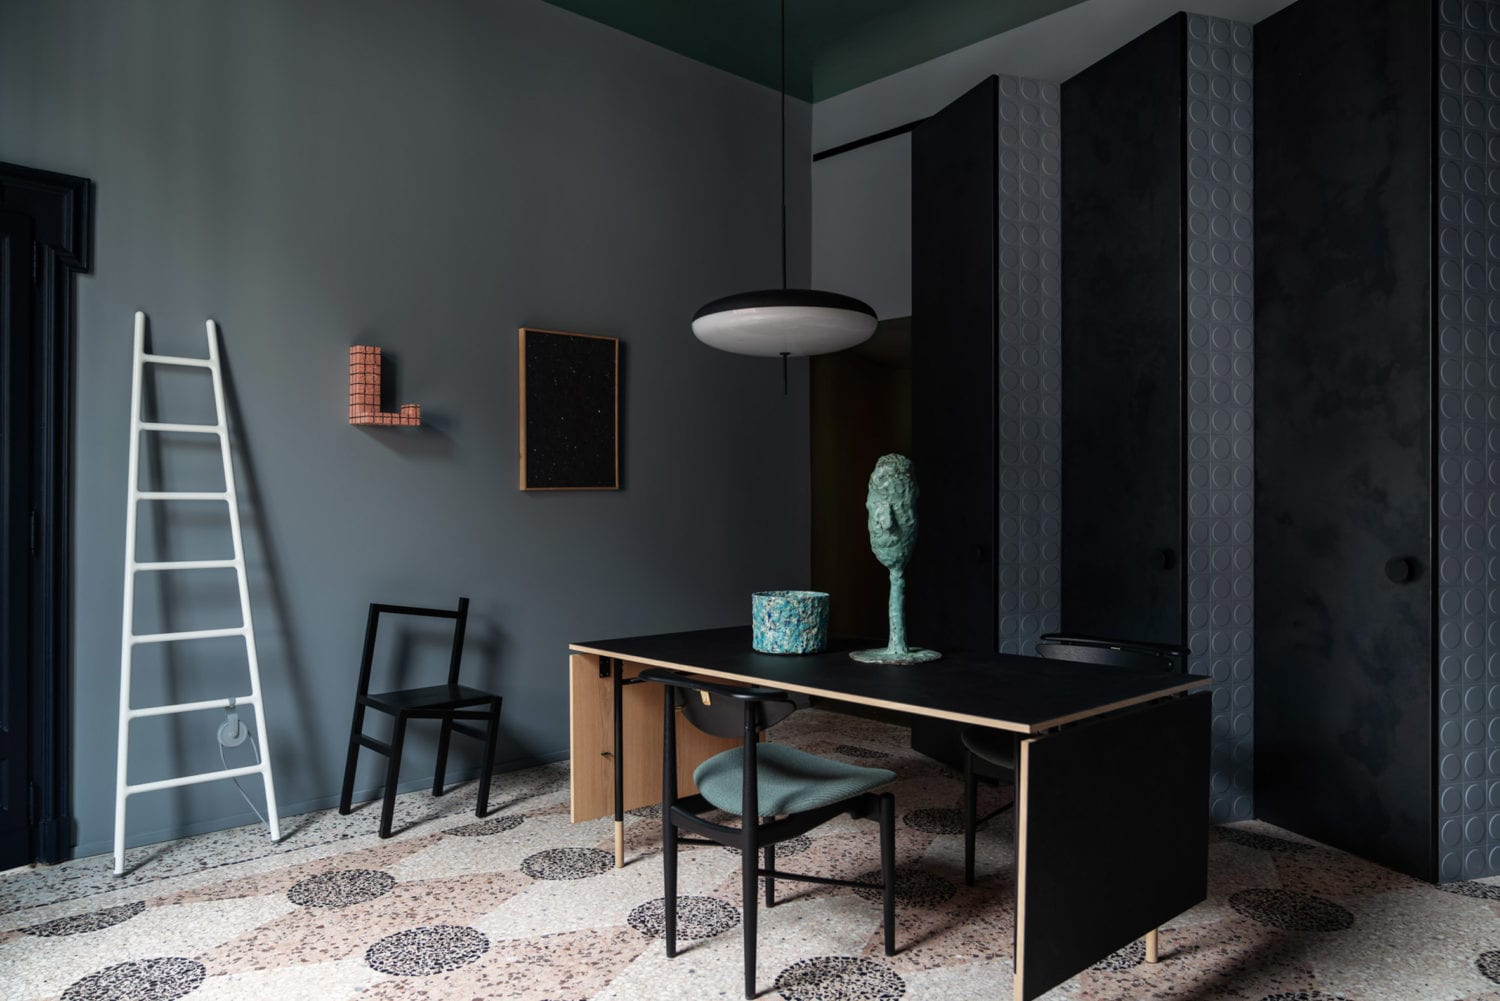 Perfect Darkness Apartment Installation By Elisa Ossino And Josephine Akvama Hoffmeyer Milan Design Week 2019 Yellowtrace 04